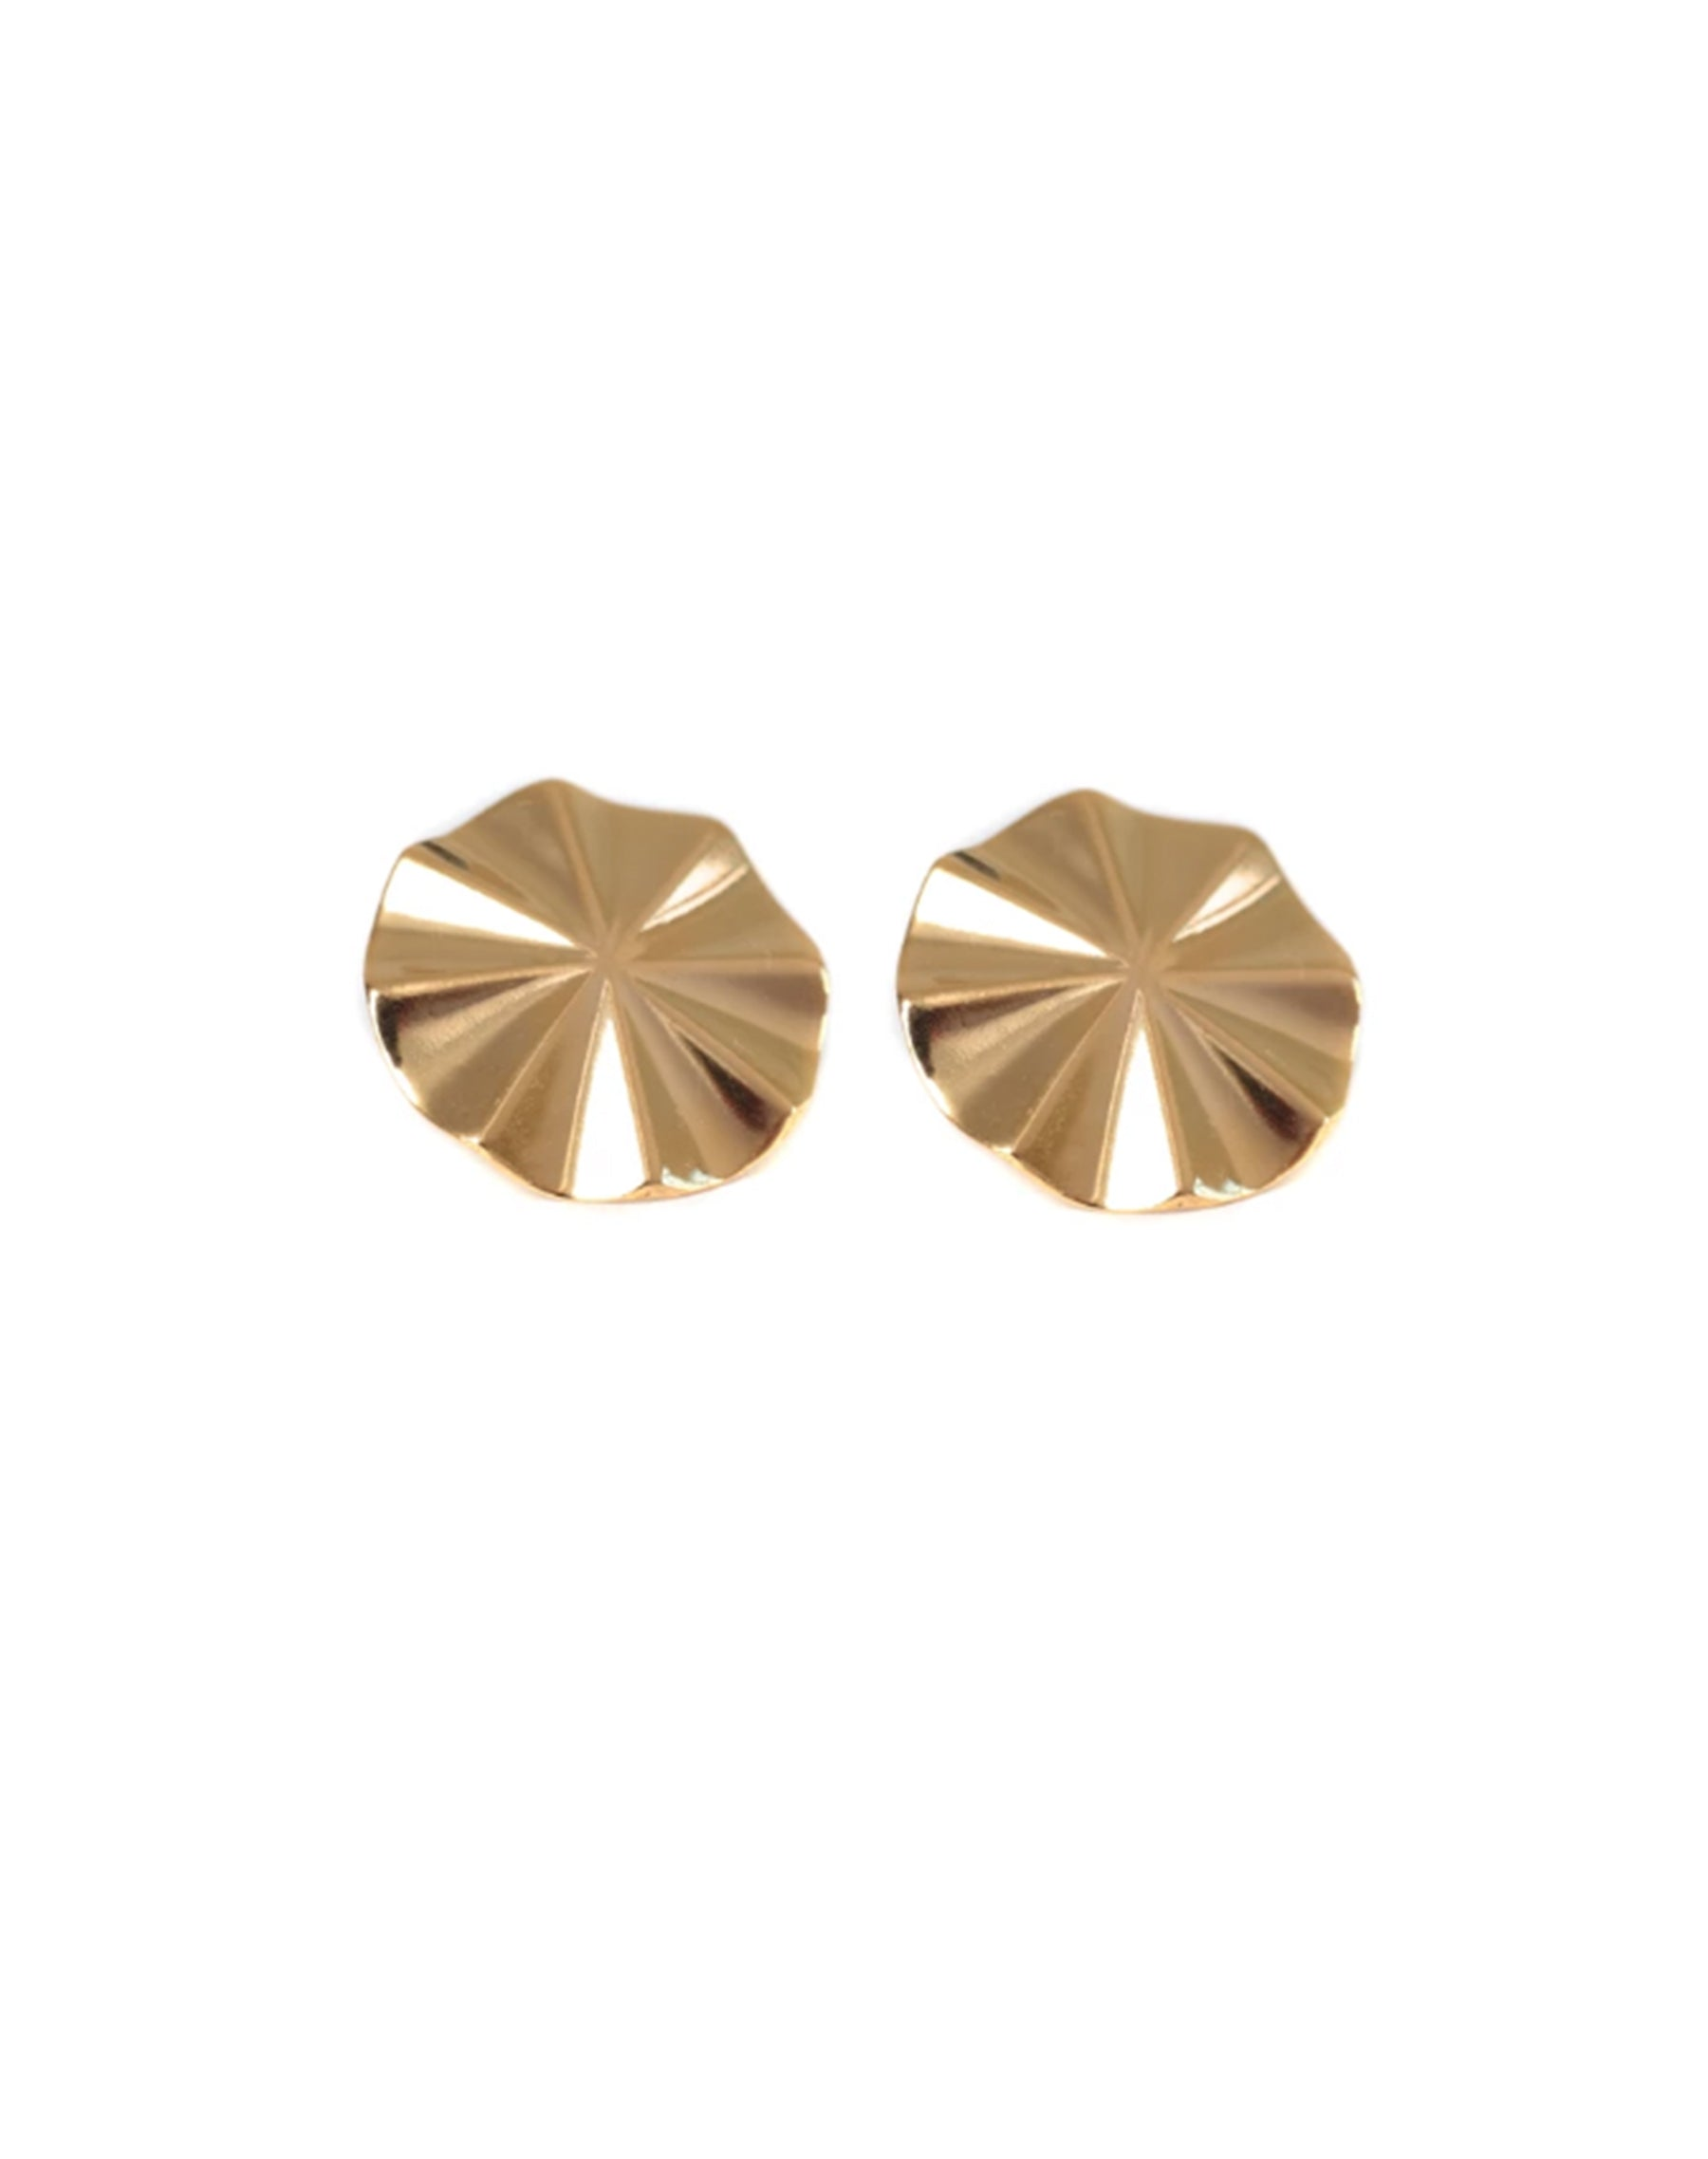 Image of the Cala studs in gold by Lisbeth.